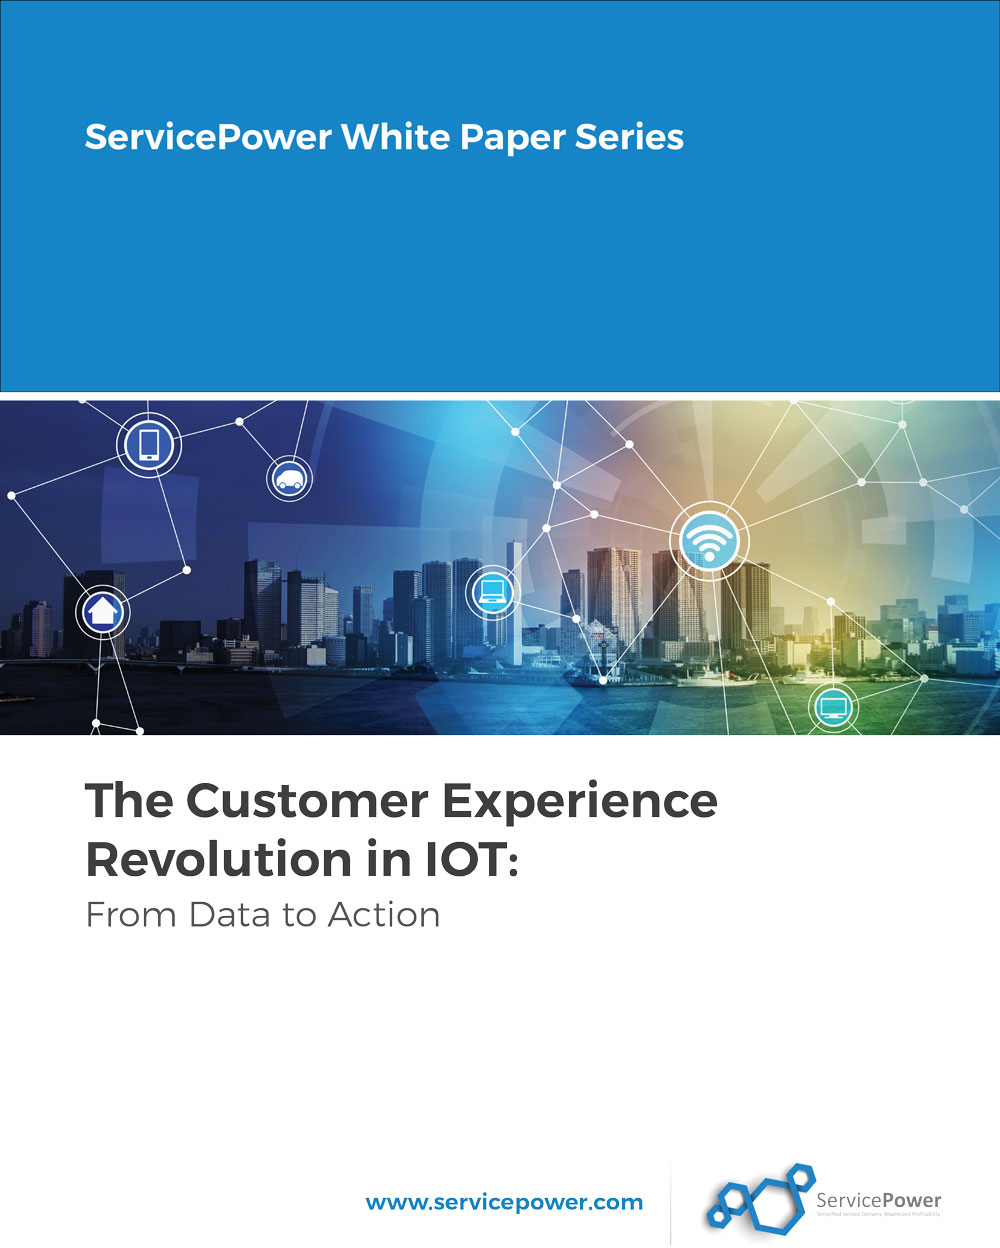 Download: The Customer Experience Revolution in IOT: From Data to Action